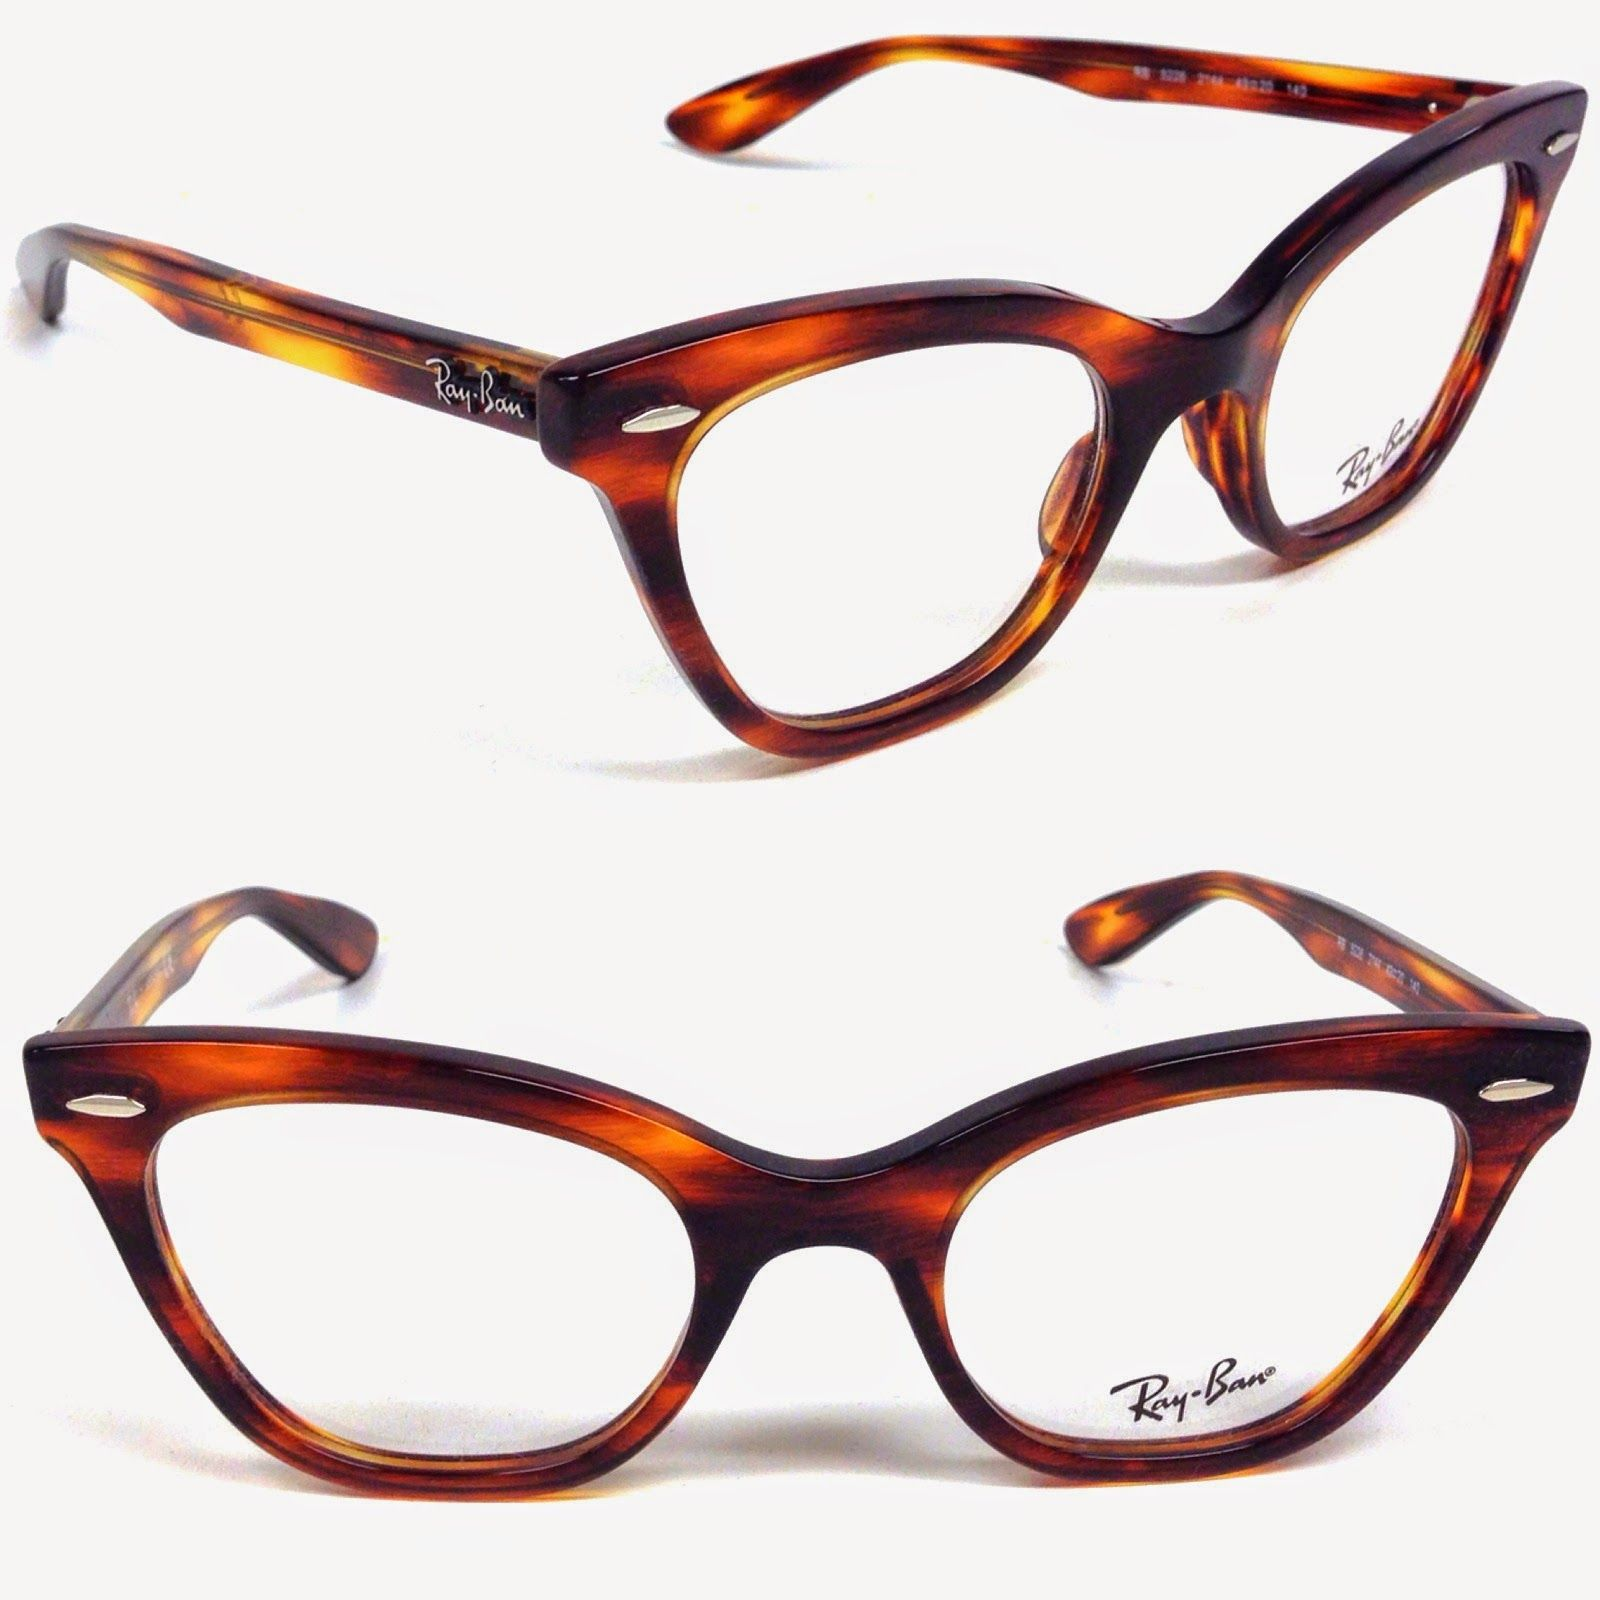 25b014cc08a Images For Ray Ban Cat Eye Glasses 5226